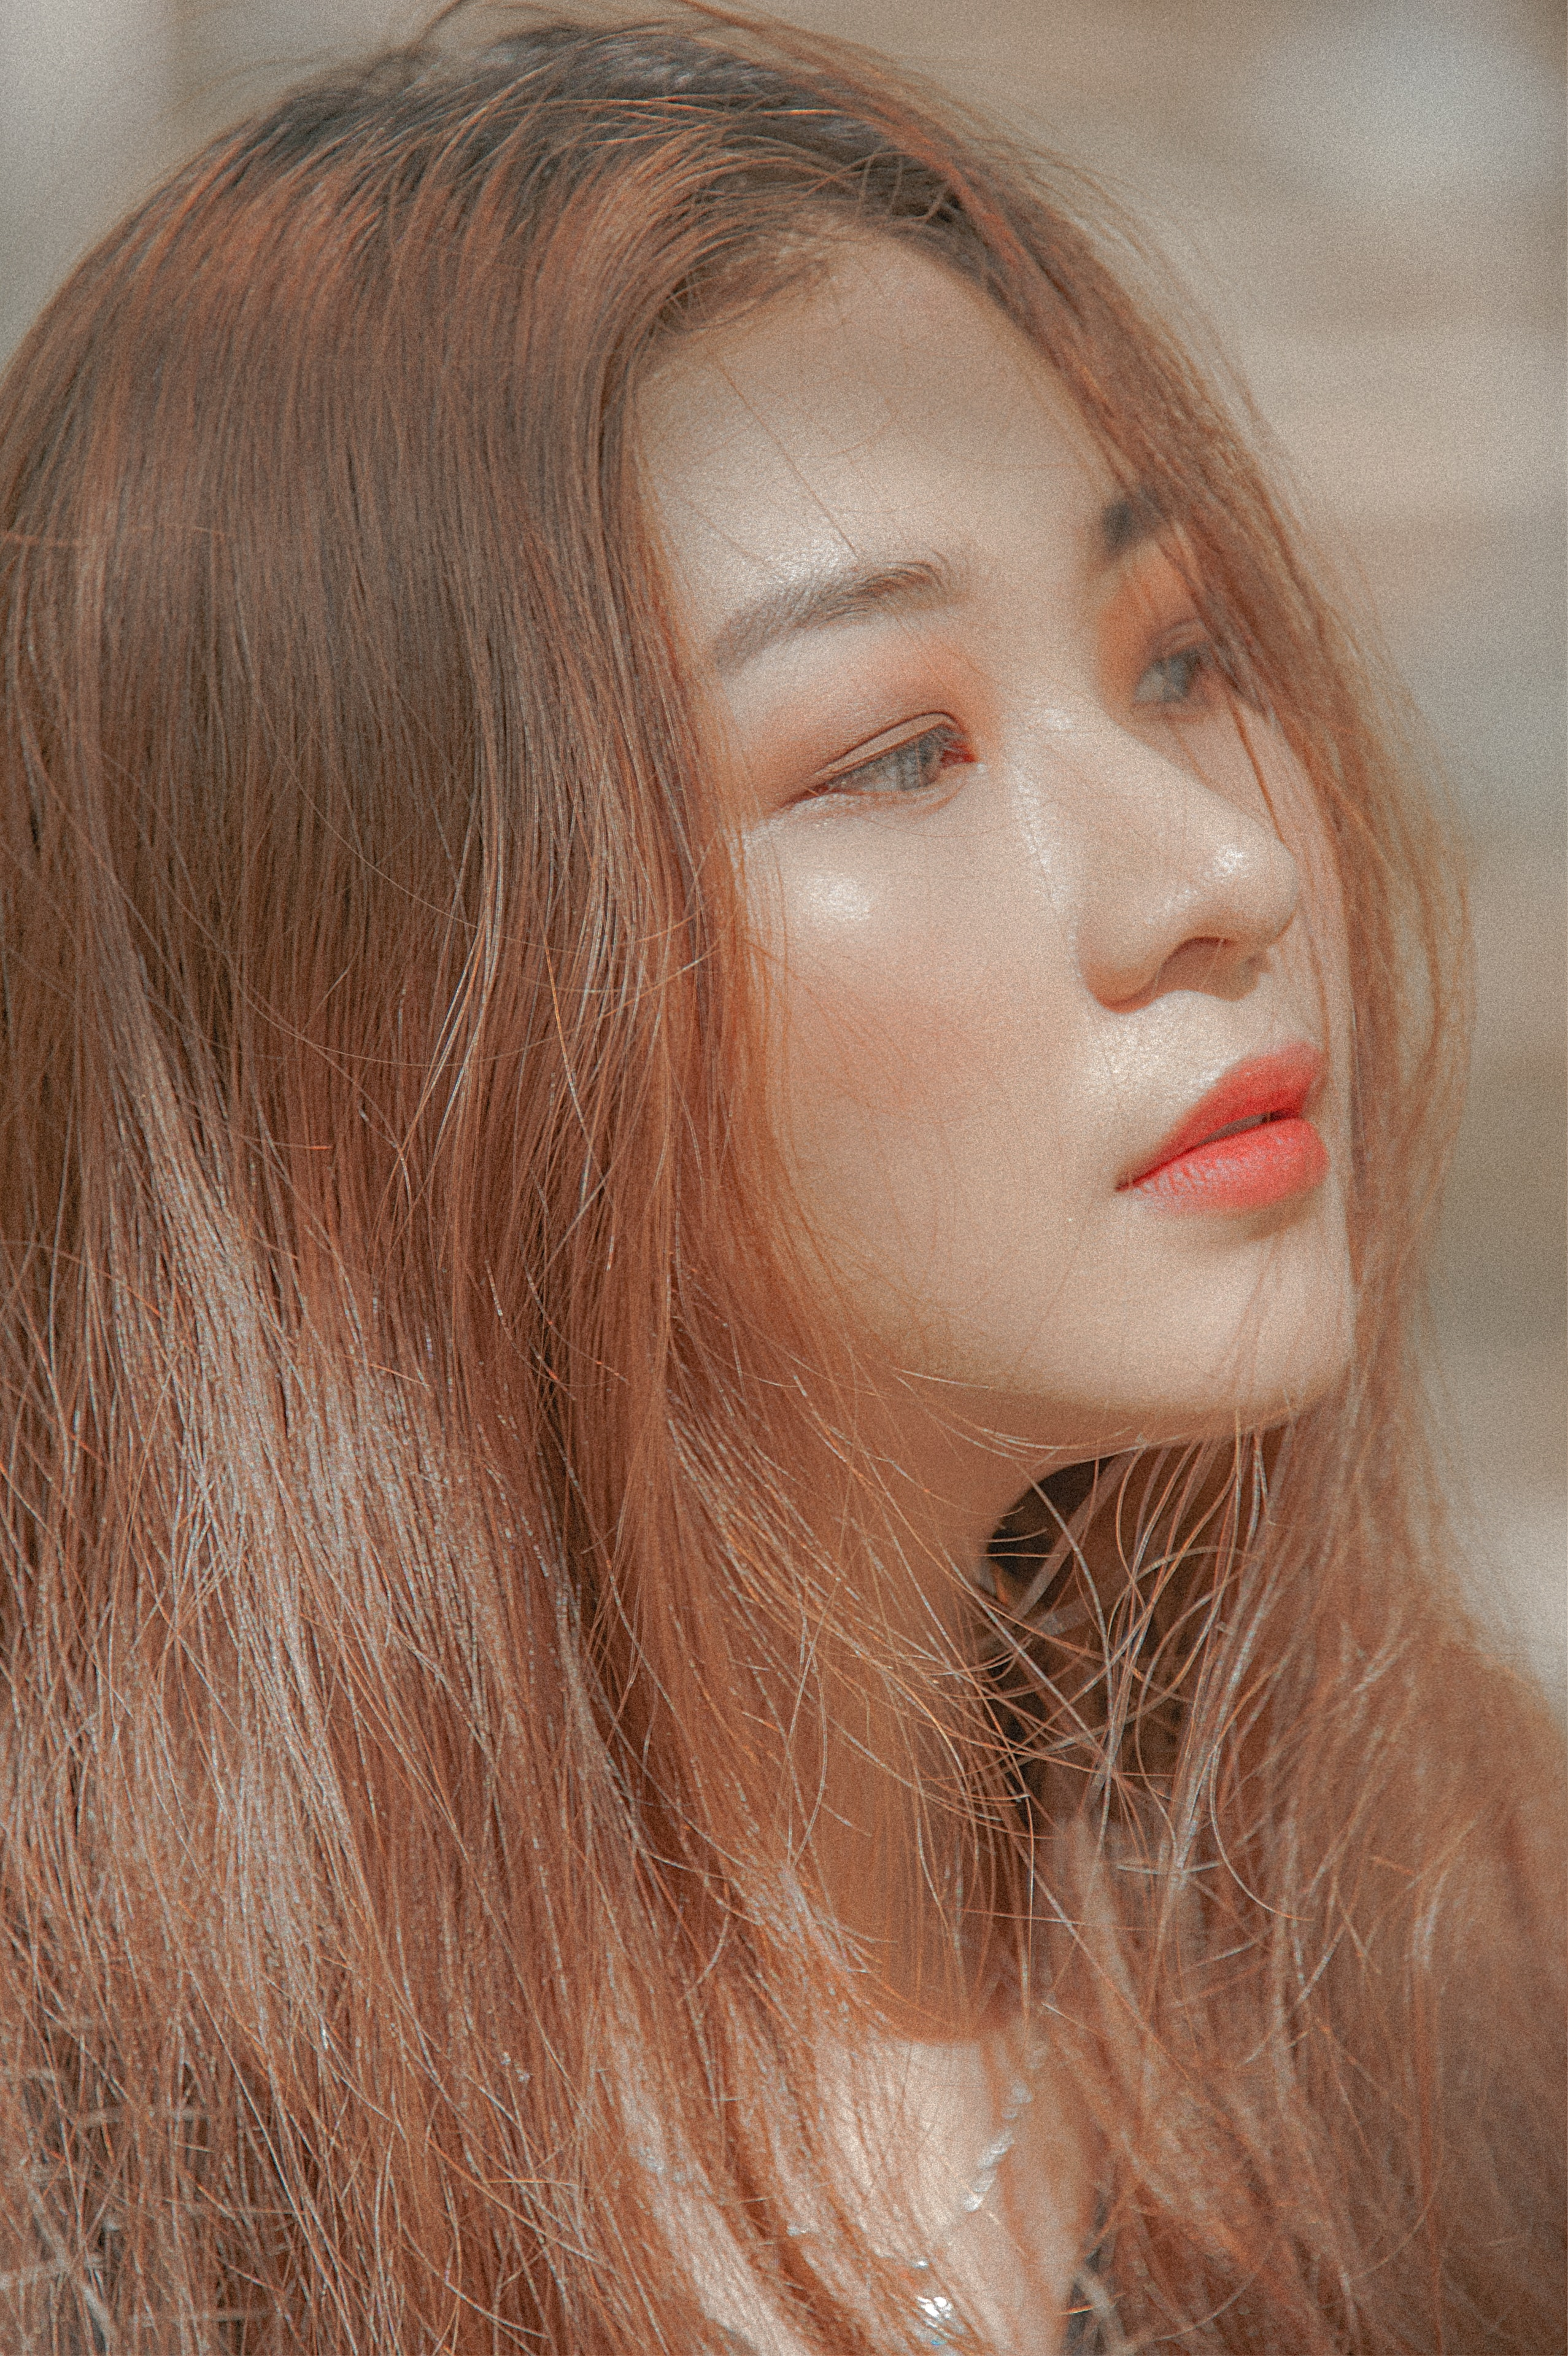 Woman With Red Hair and Orange Lipstick Taking Self Photo, Makeup, Young, Woman, Stylish, HQ Photo